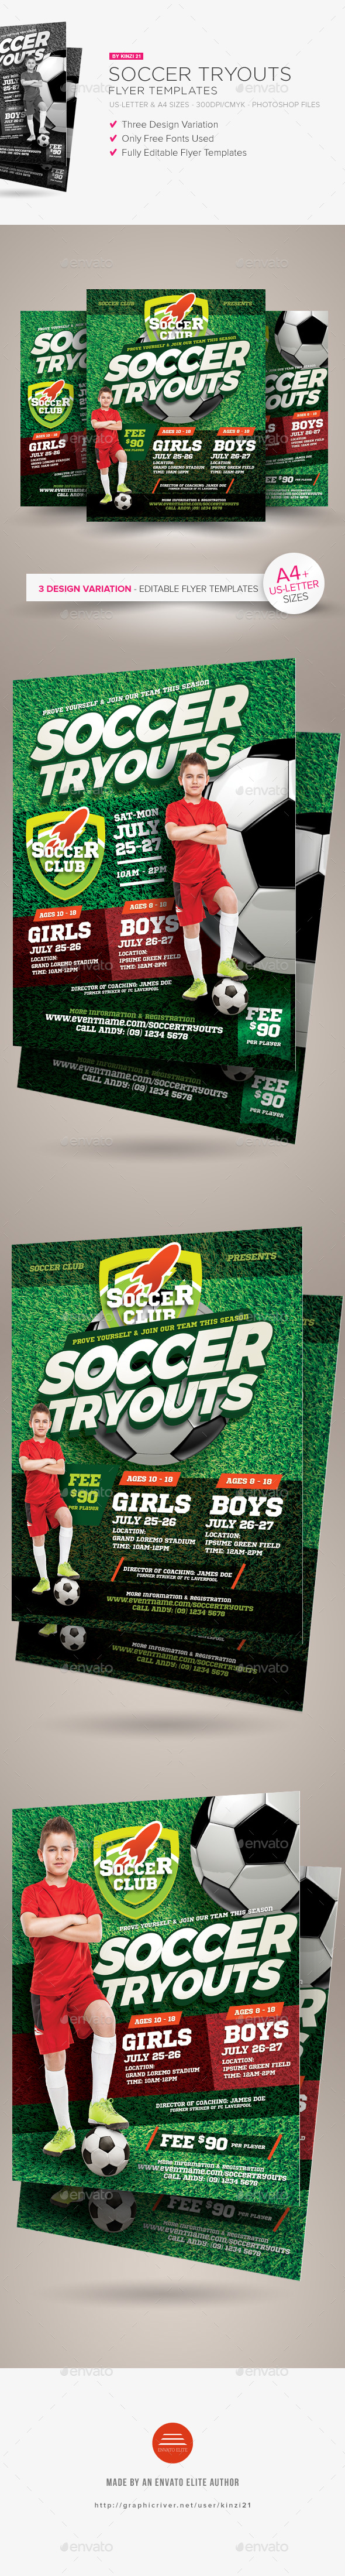 Soccer Tryouts Flyer Templates - Sports Events